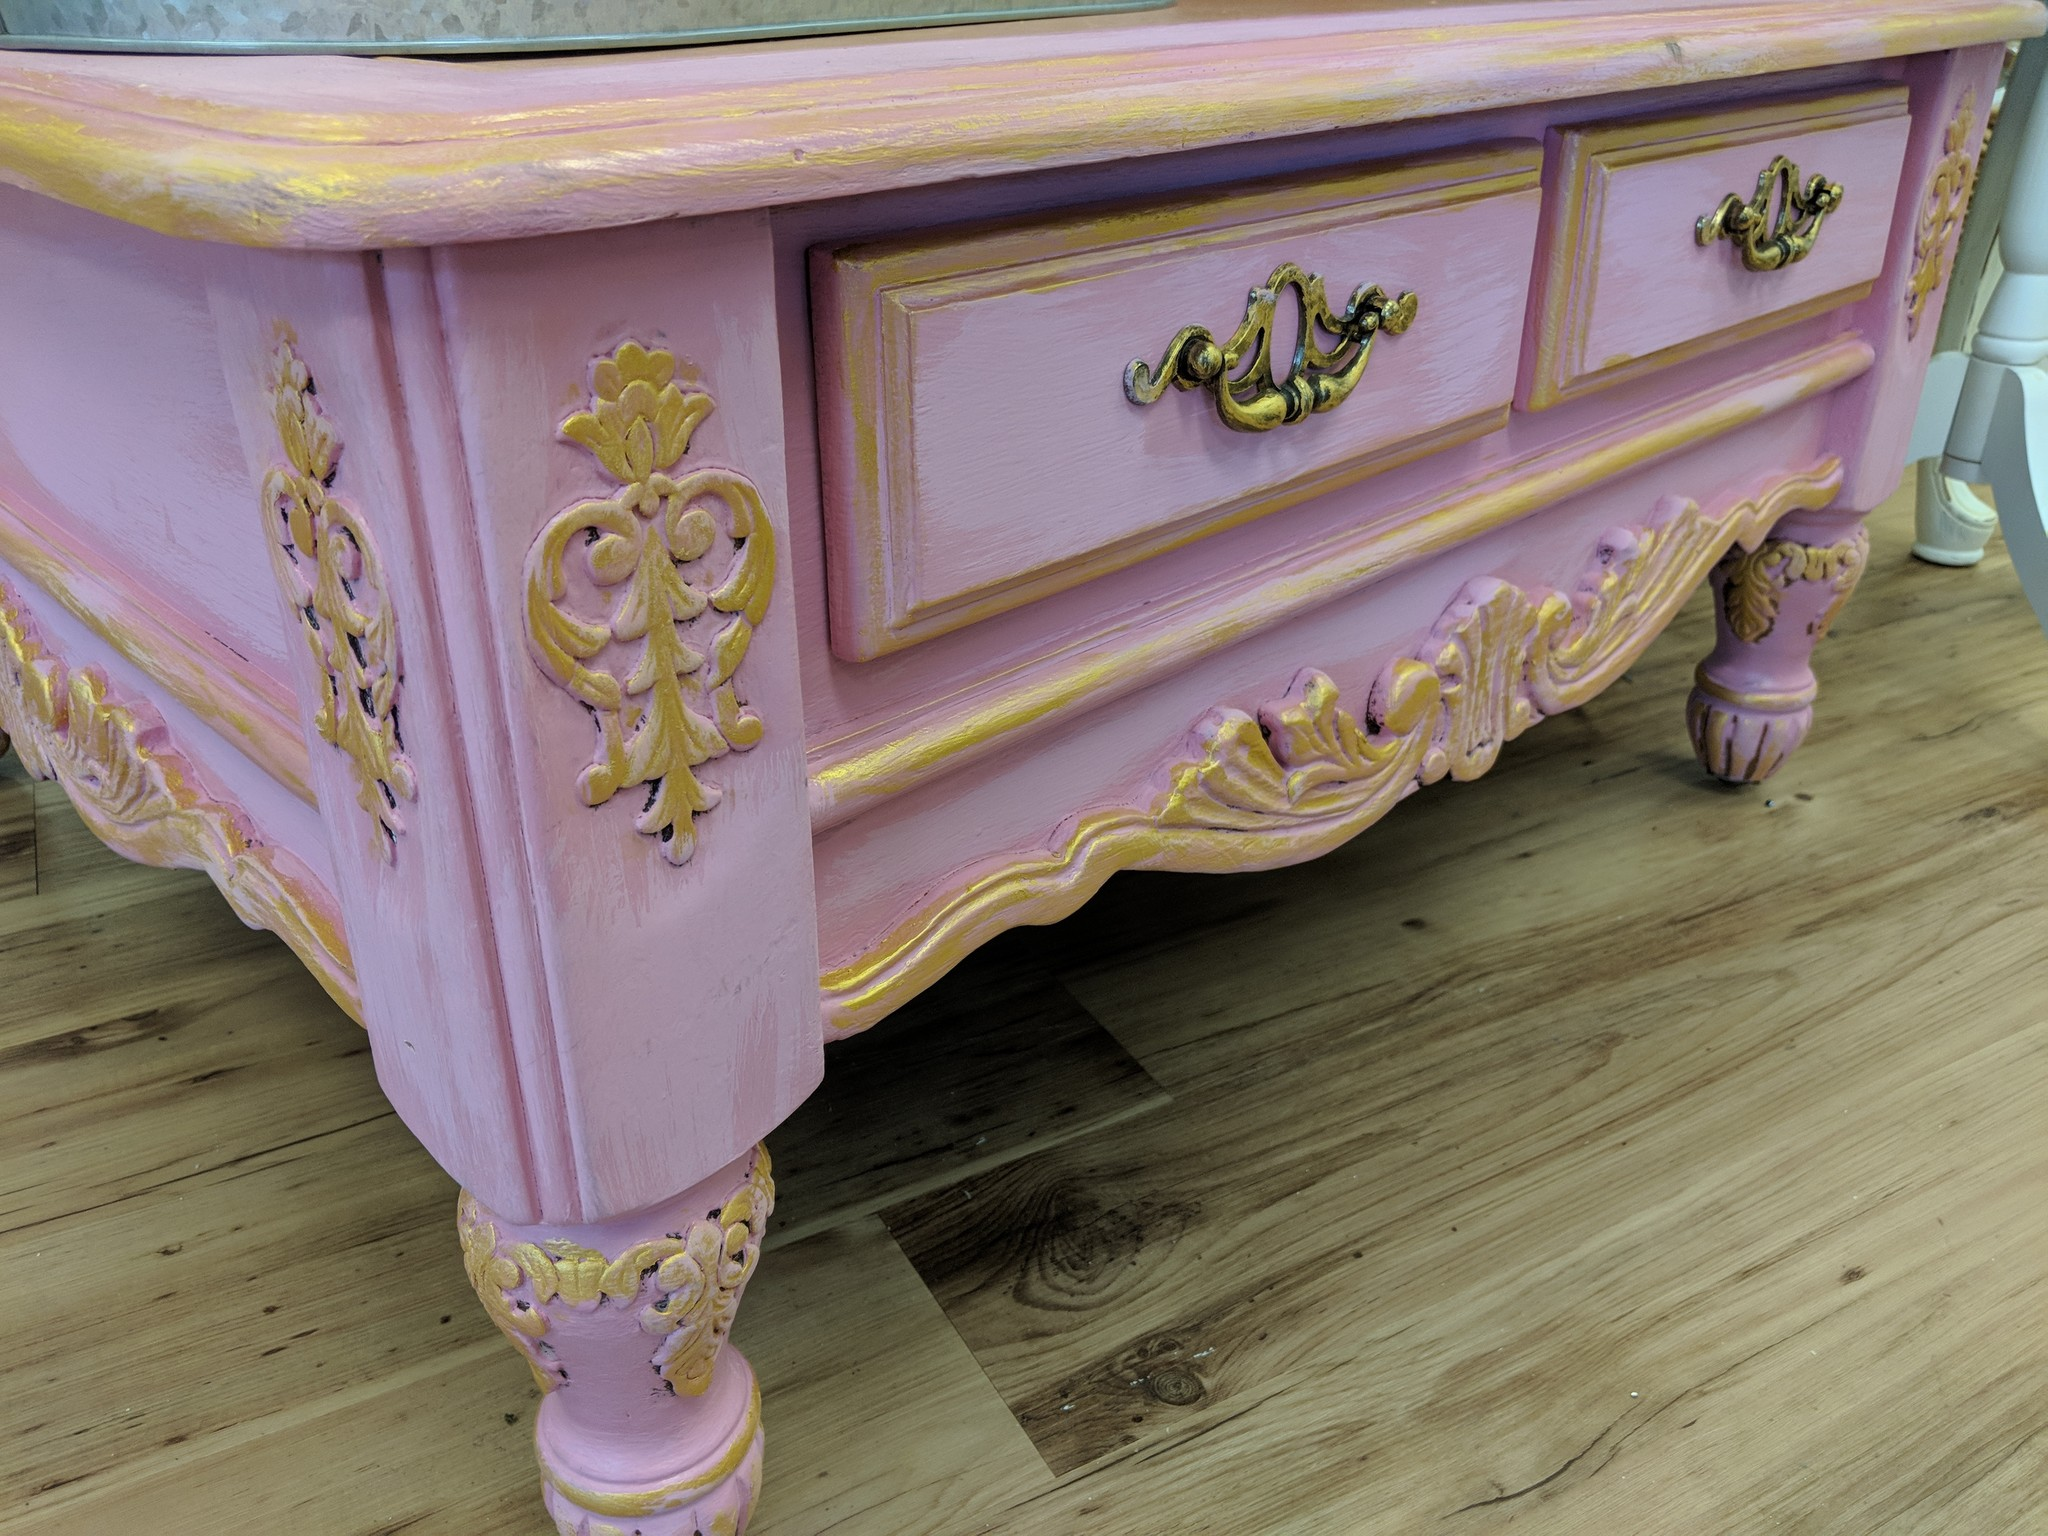 Watch and Learn: Furniture Painting Basics:  April 4th ,12pm-12:30pm